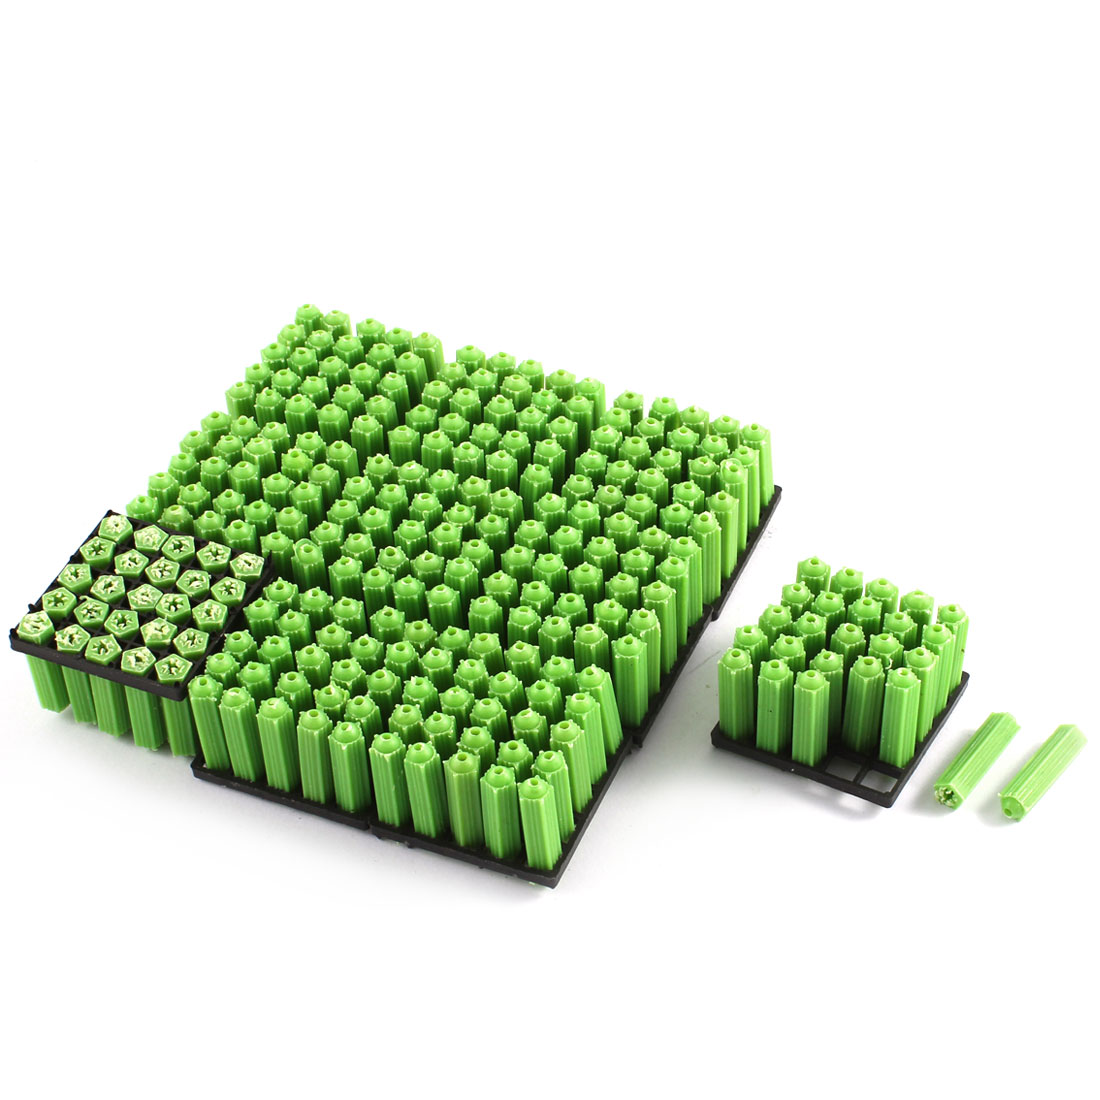 7x26mm Plastic Screws Fixing Wall Anchor Green 250Pcs